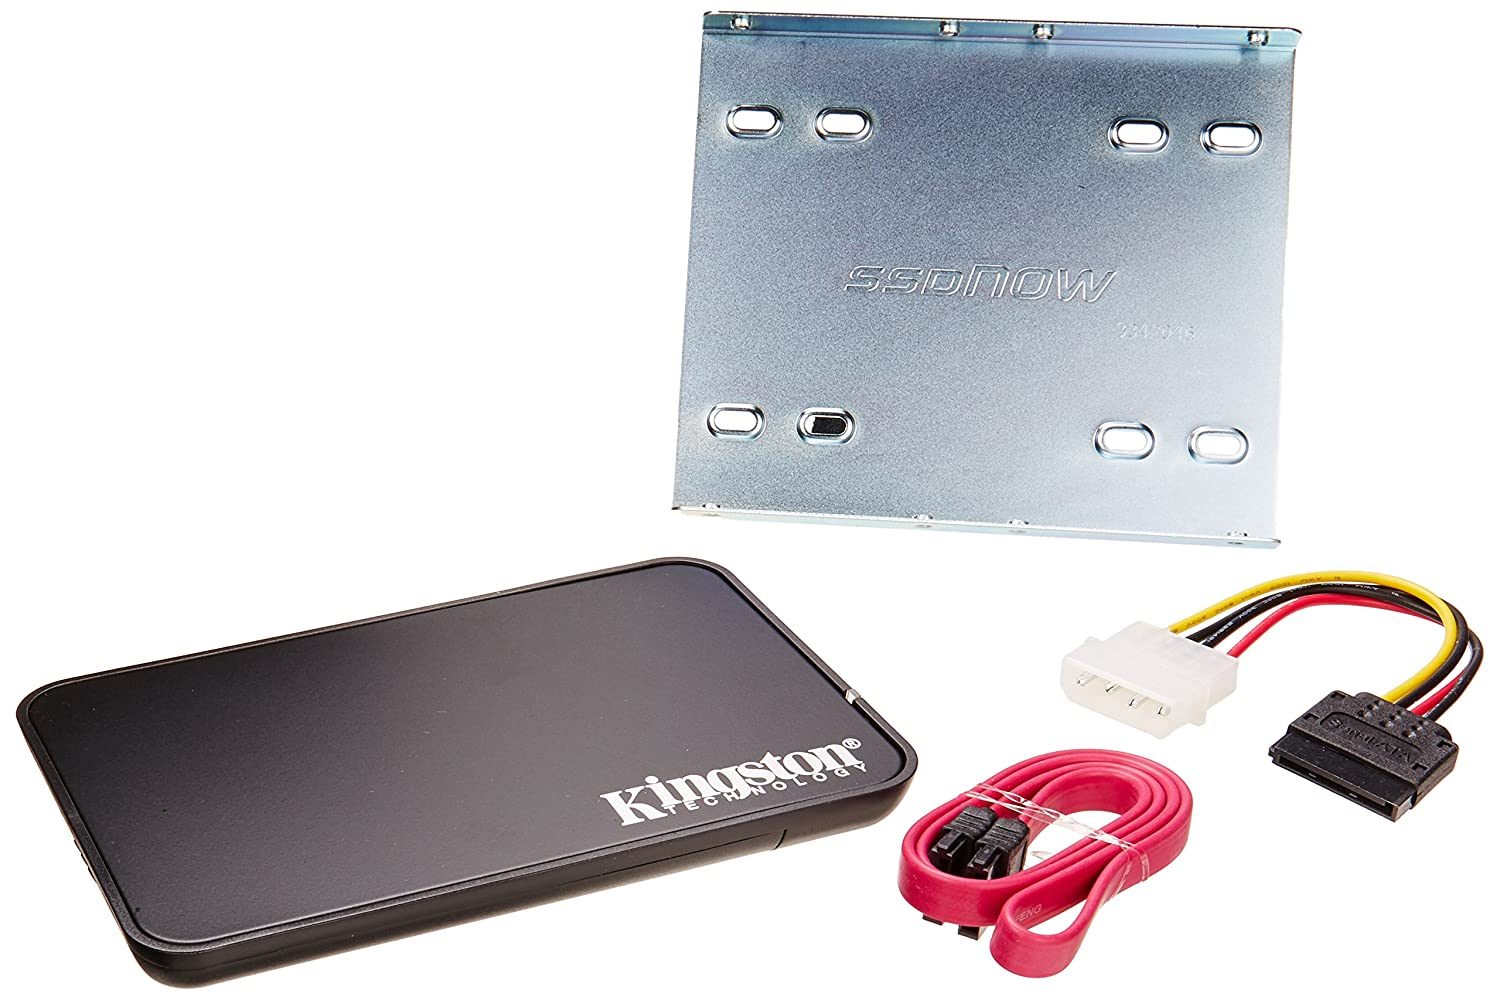 Kingston SNA-B Solid State Drive Installation Kit, Black